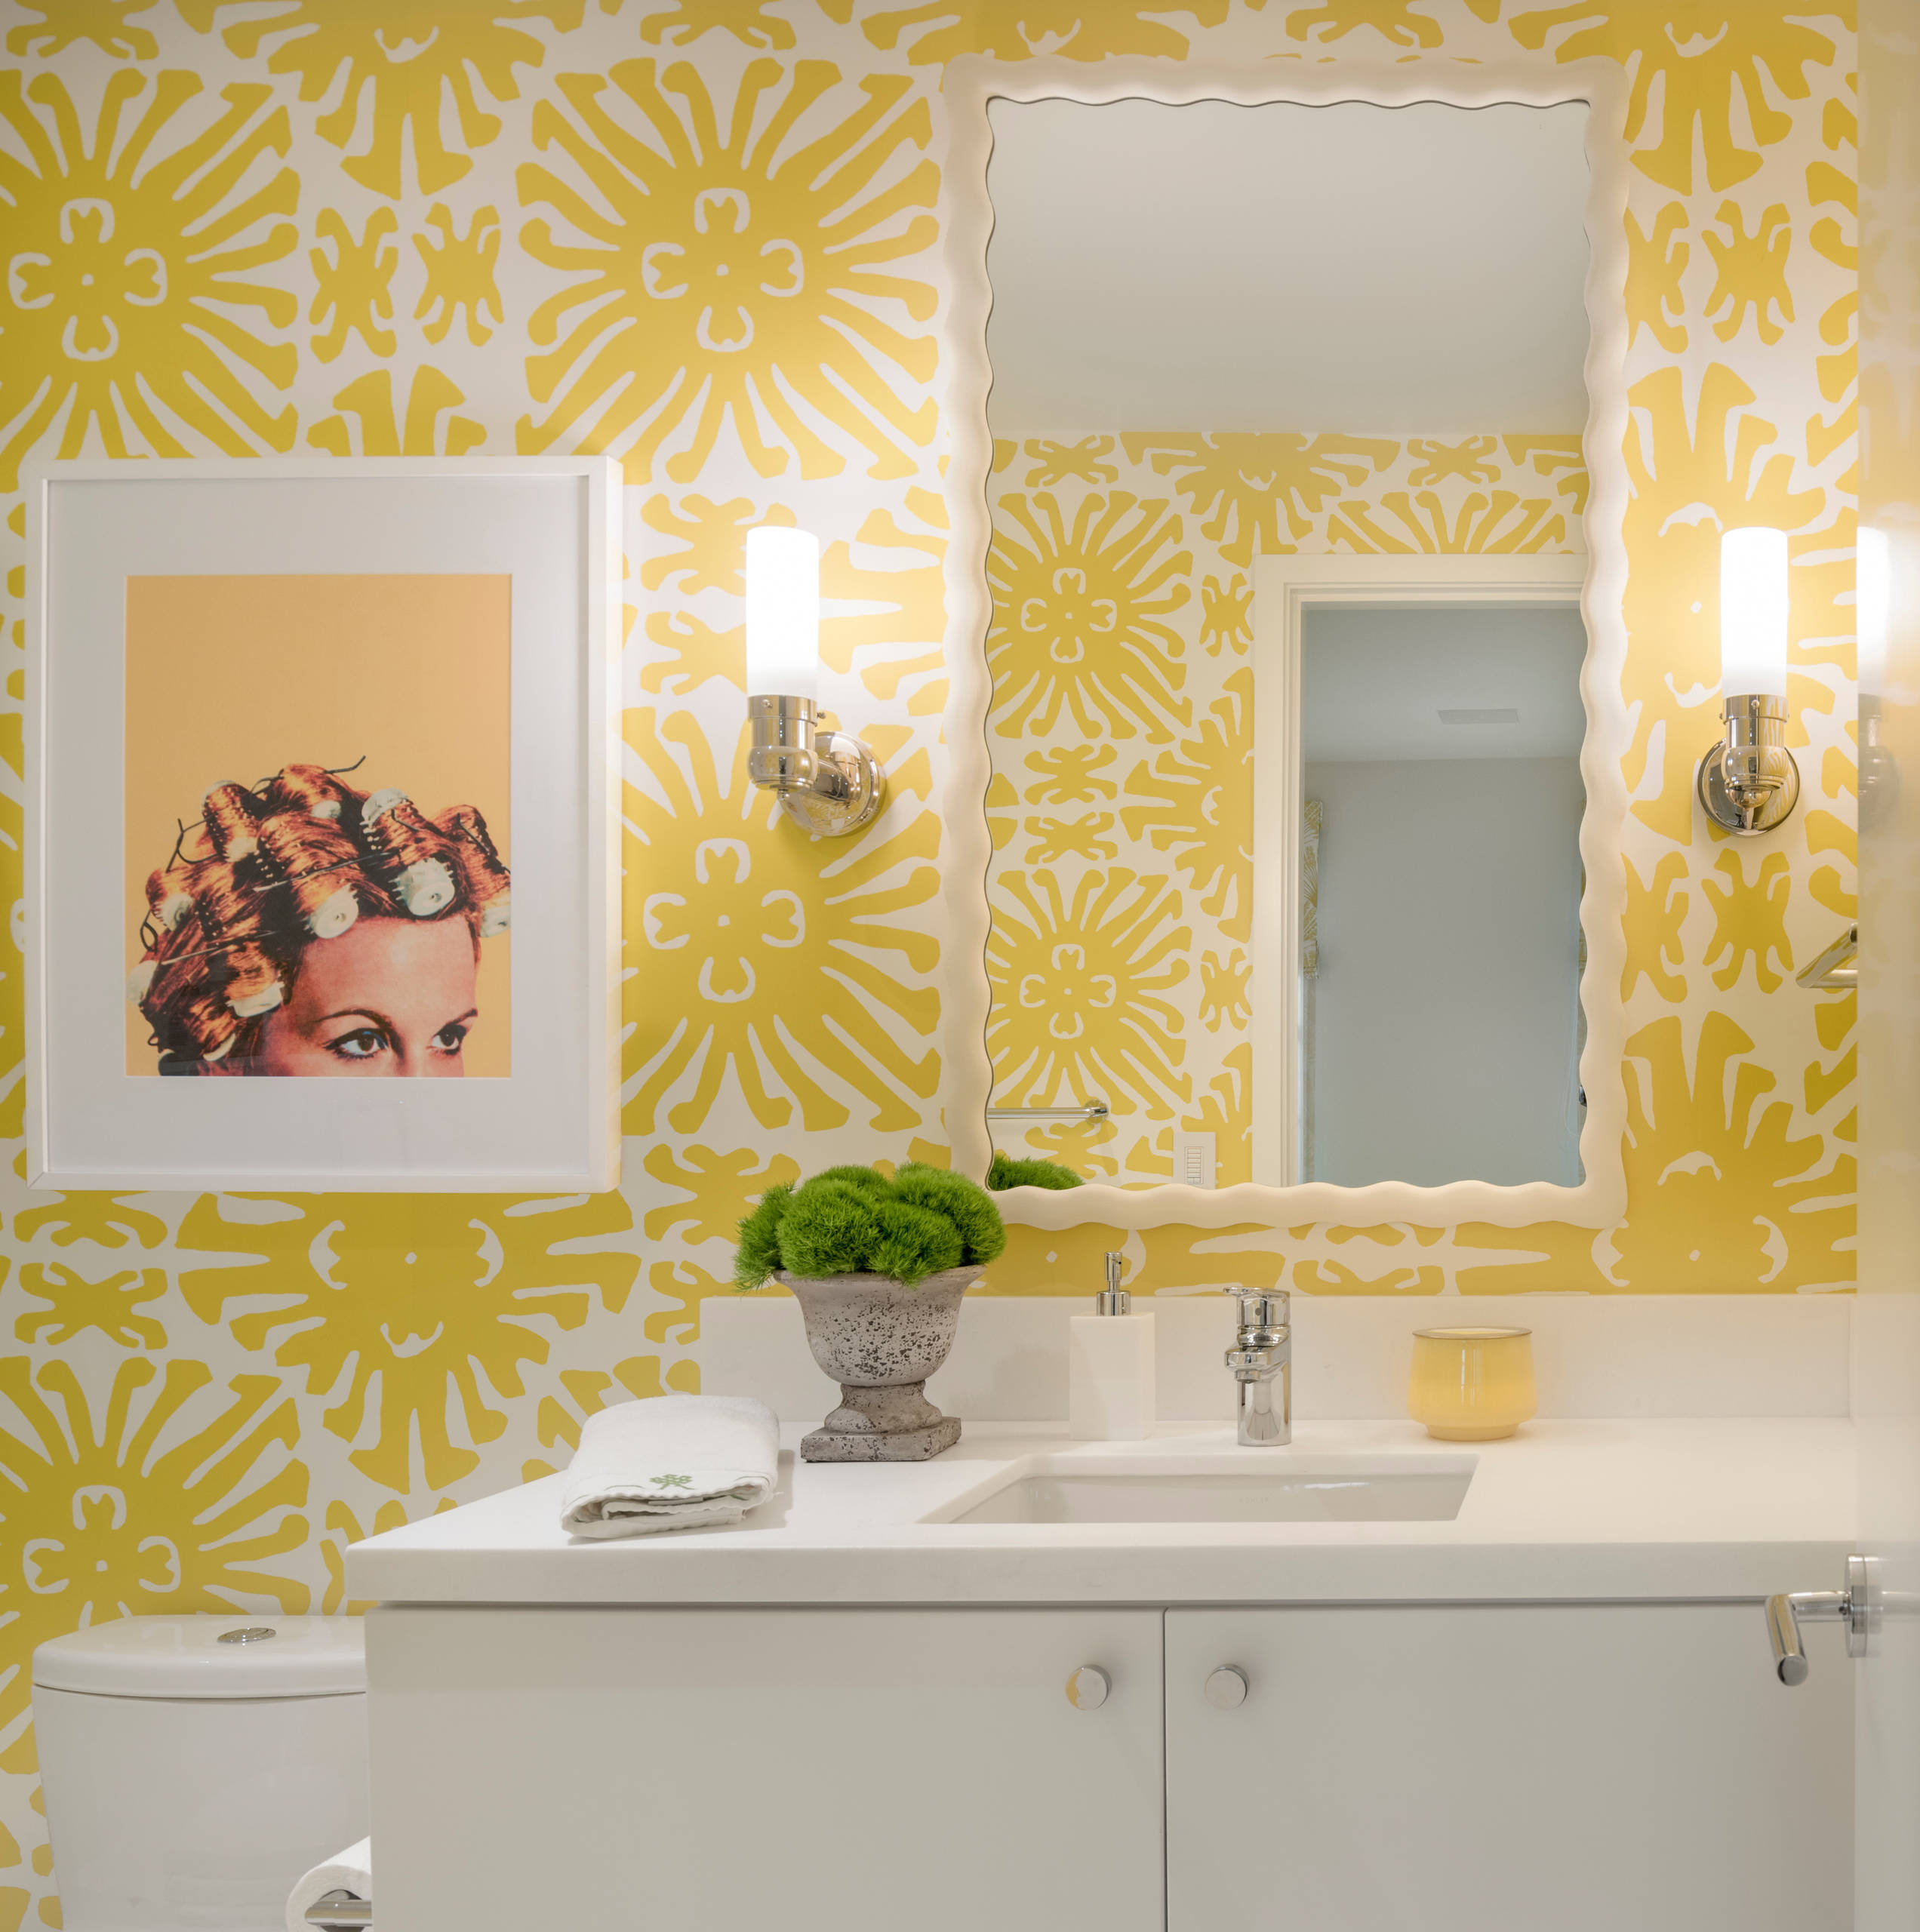 75 Beautiful Bathroom With Yellow Walls Pictures Ideas February 2021 Houzz